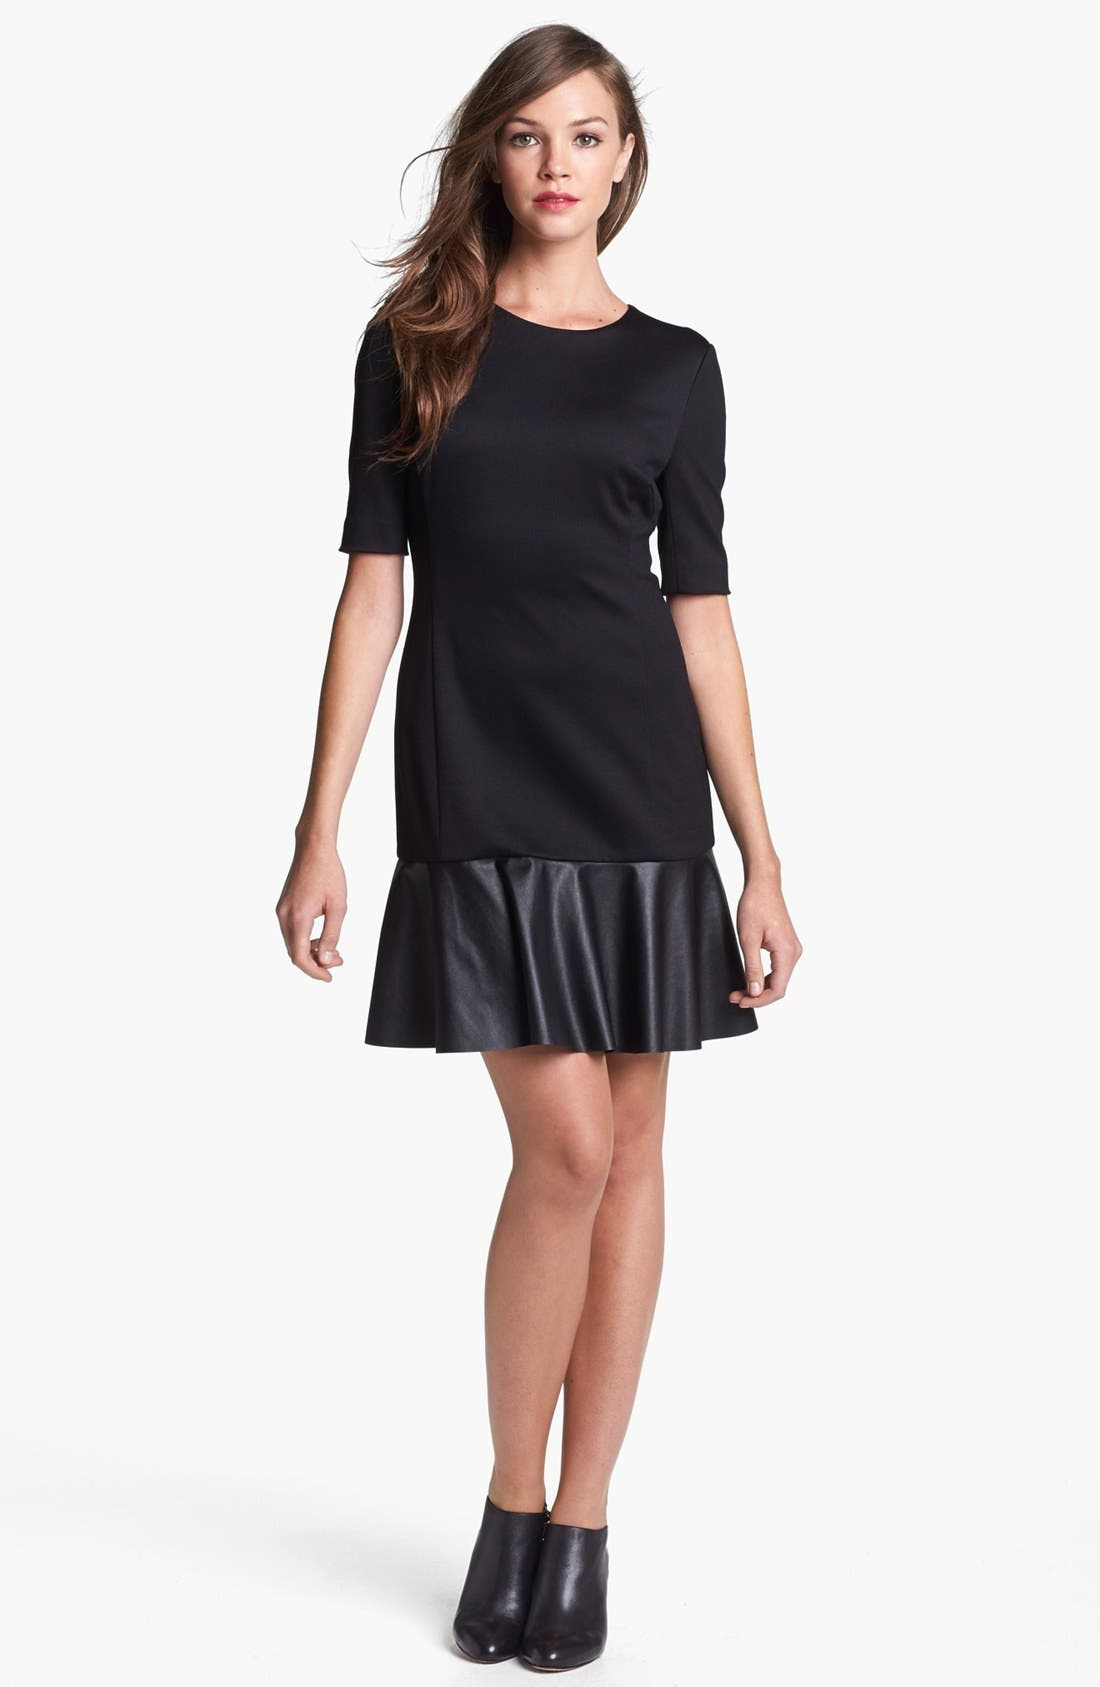 Alternate Image 1 Selected - Cynthia Steffe Faux Leather Detail Drop Waist Dress (Online Only)